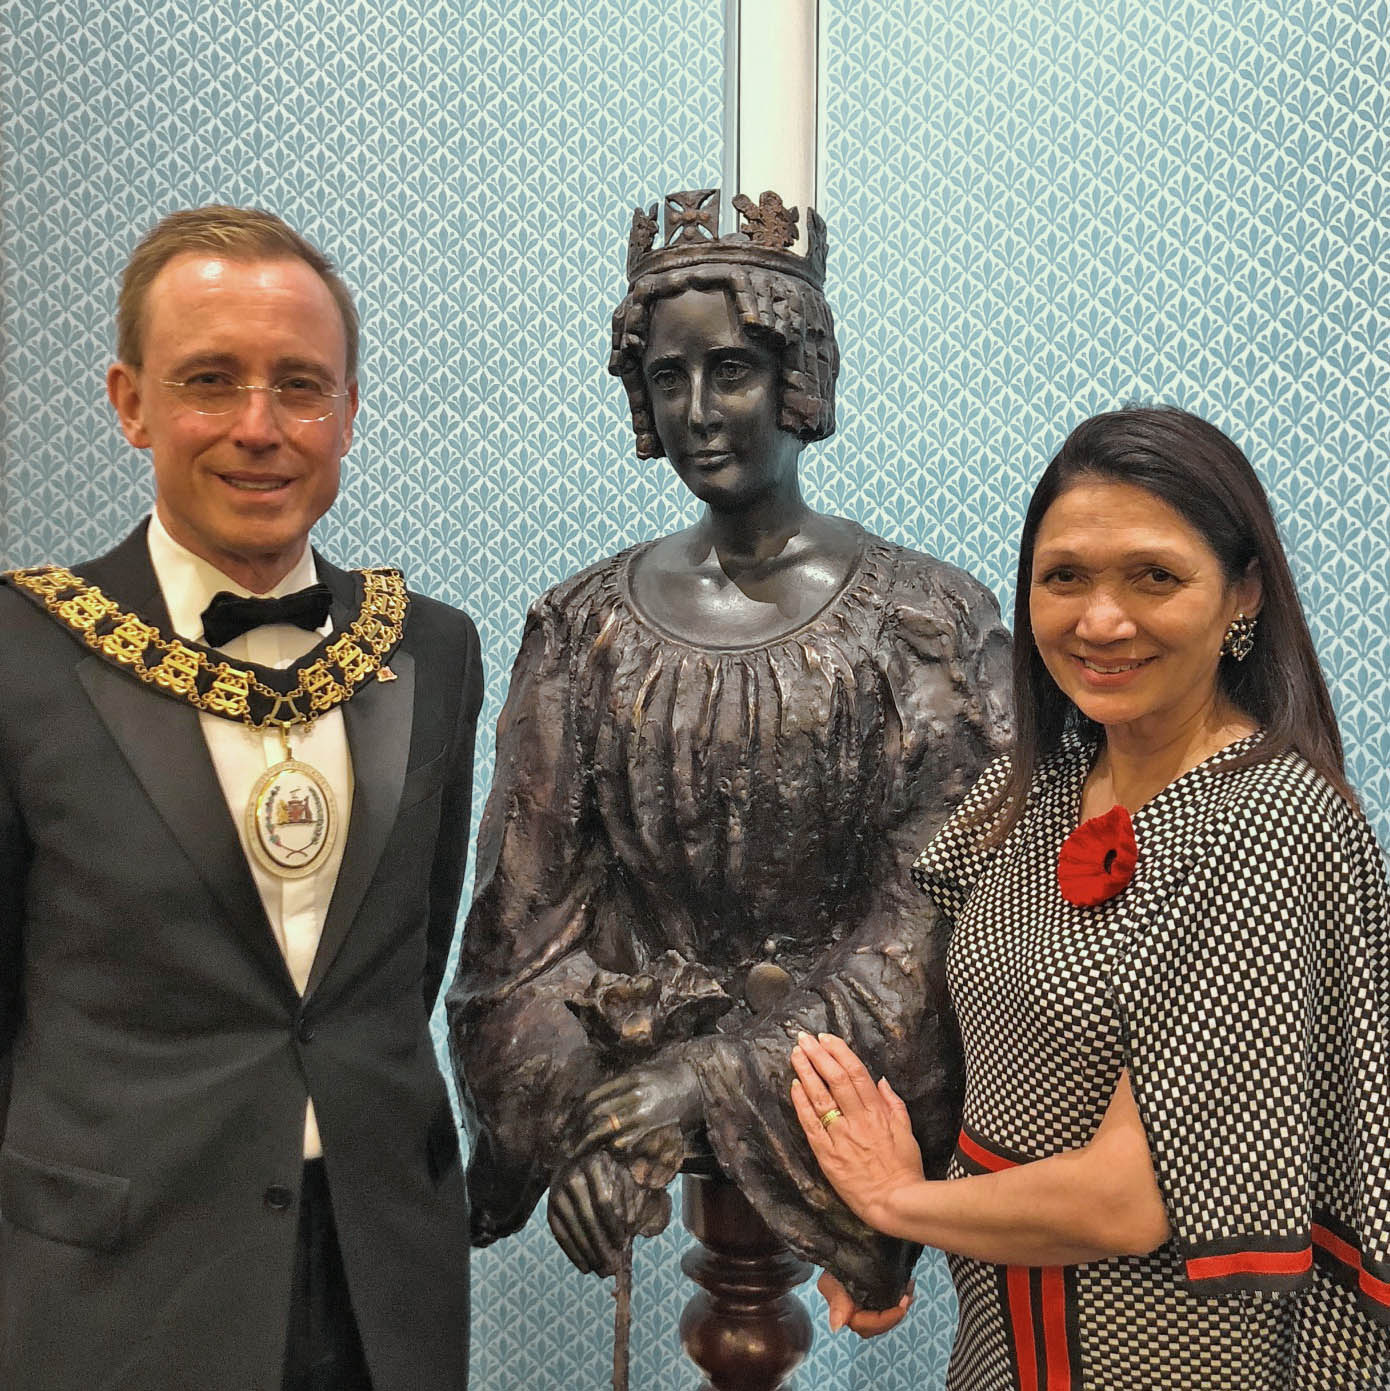 Lord Mayor Martin Haese with Lady Mayoress Genevieve Theseira-Haese with a statue of Queen Adelaide by local sculptor Scott Eames